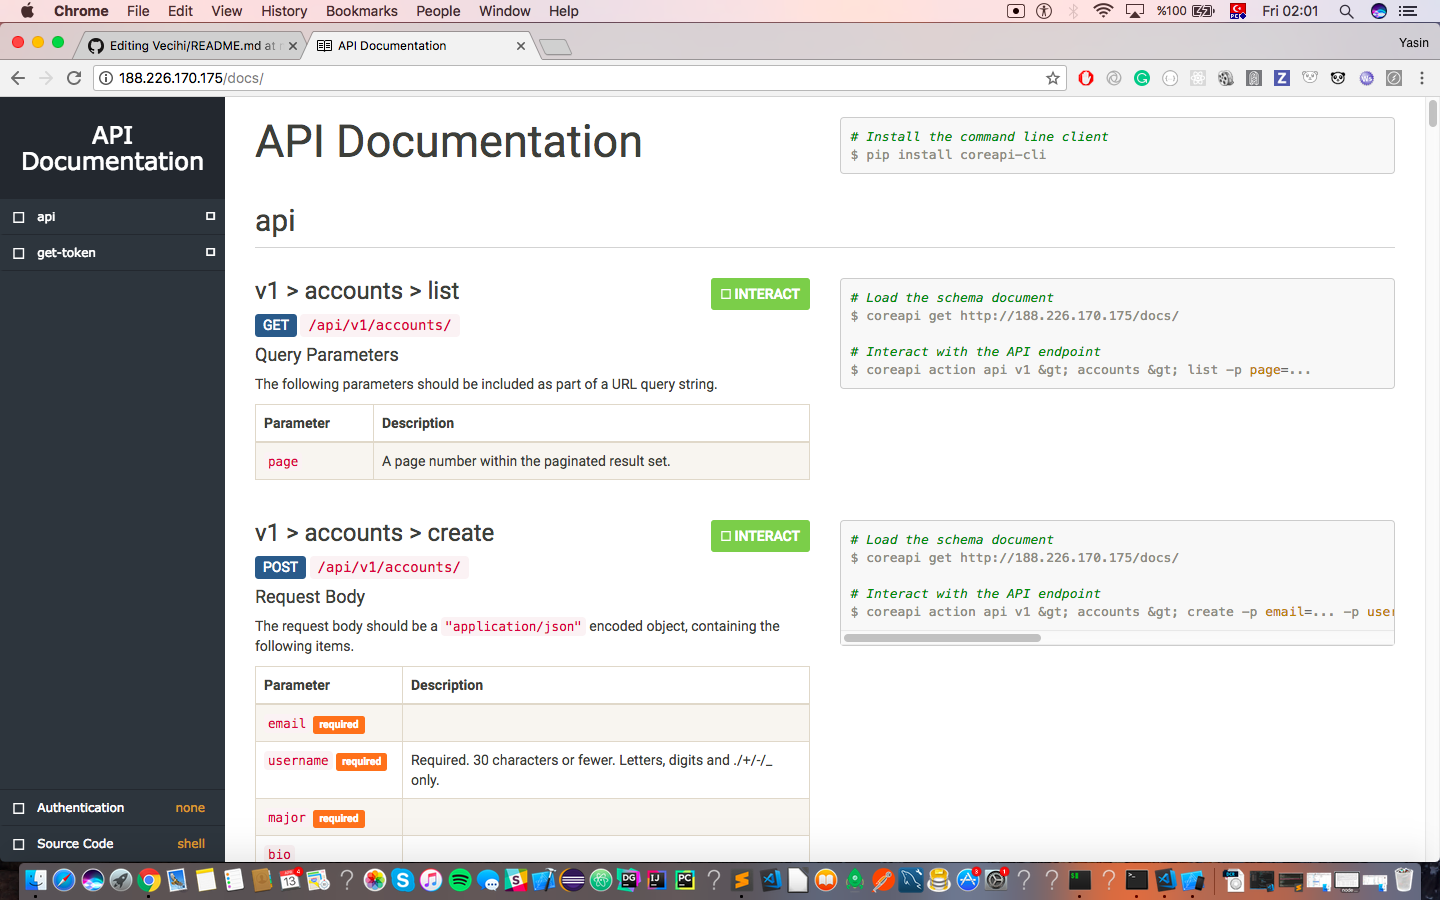 Api-Documentation--You-can-see-list-of-api-urls-